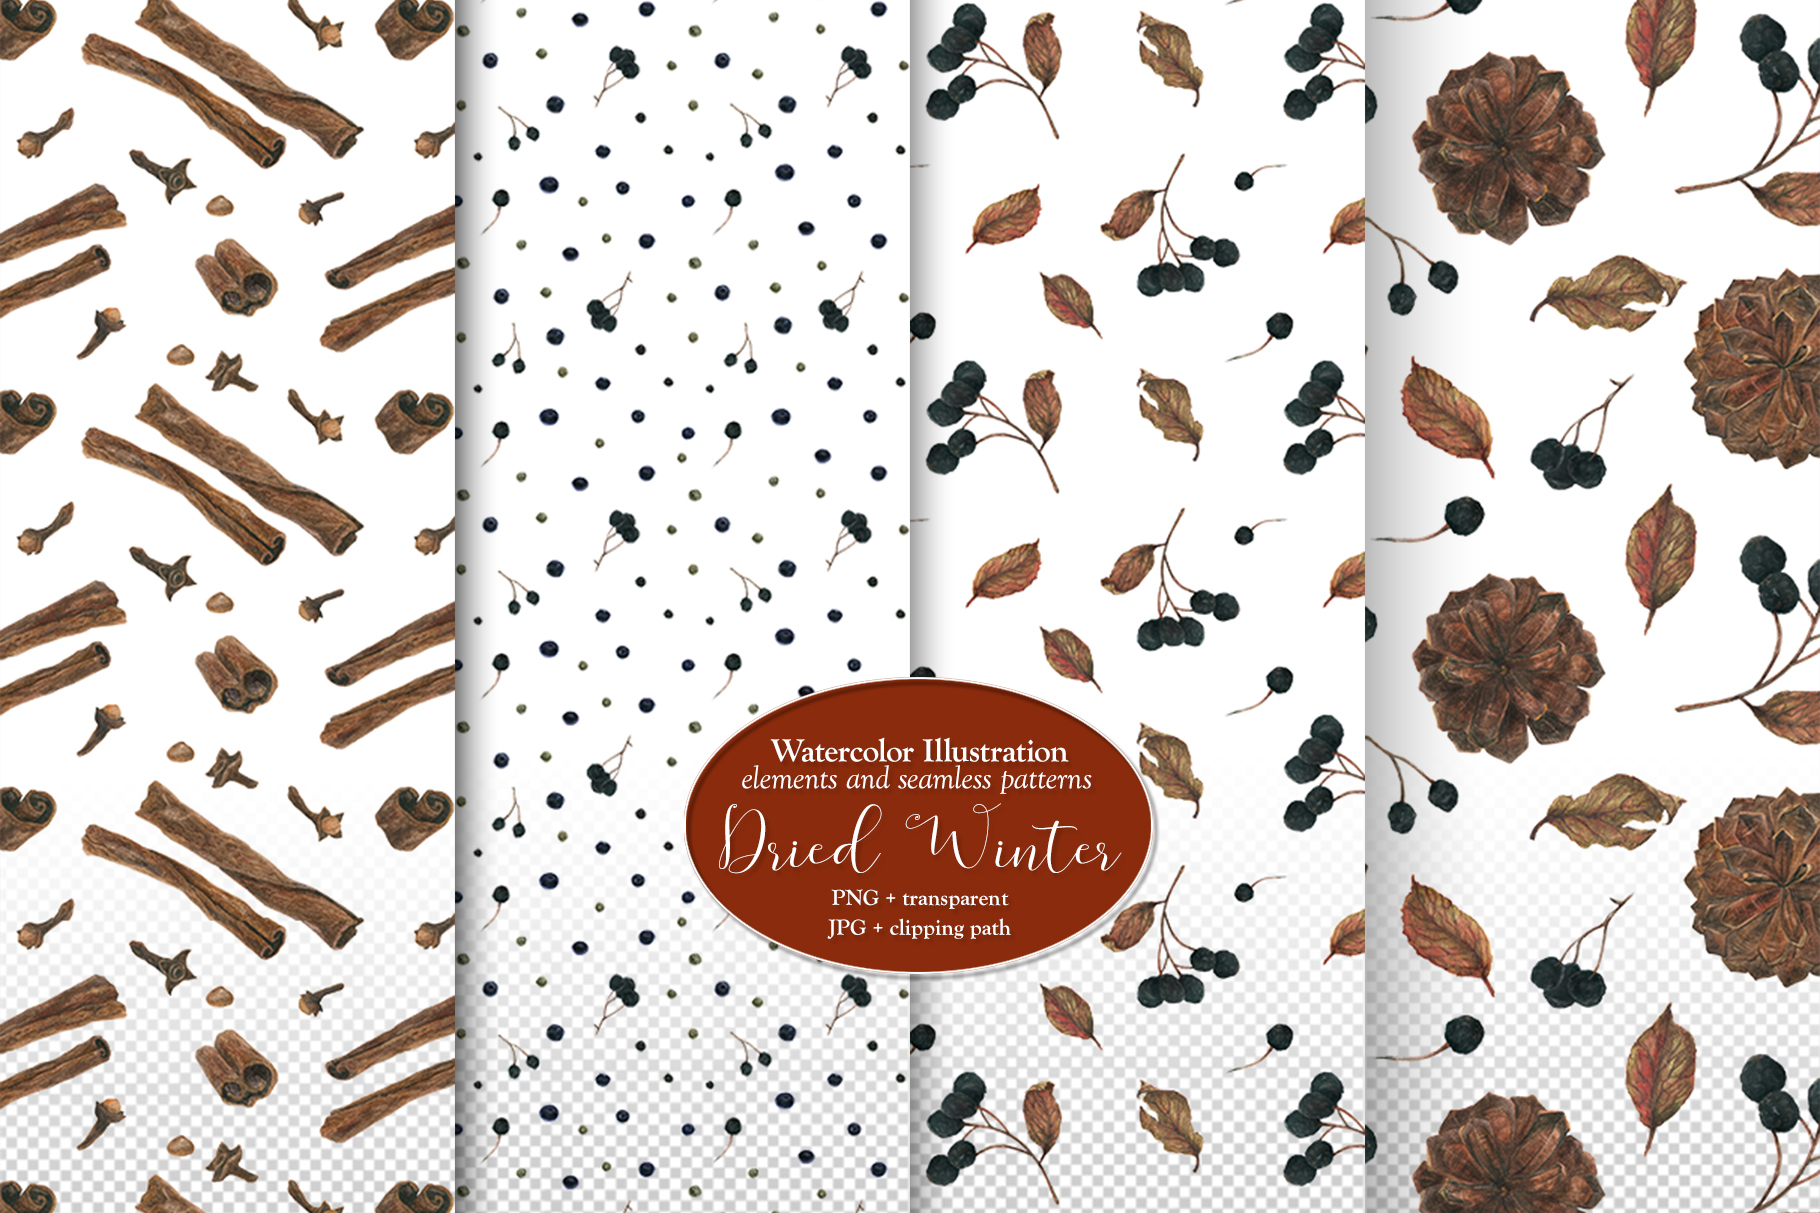 Dried Winter vol. 2 example image 10